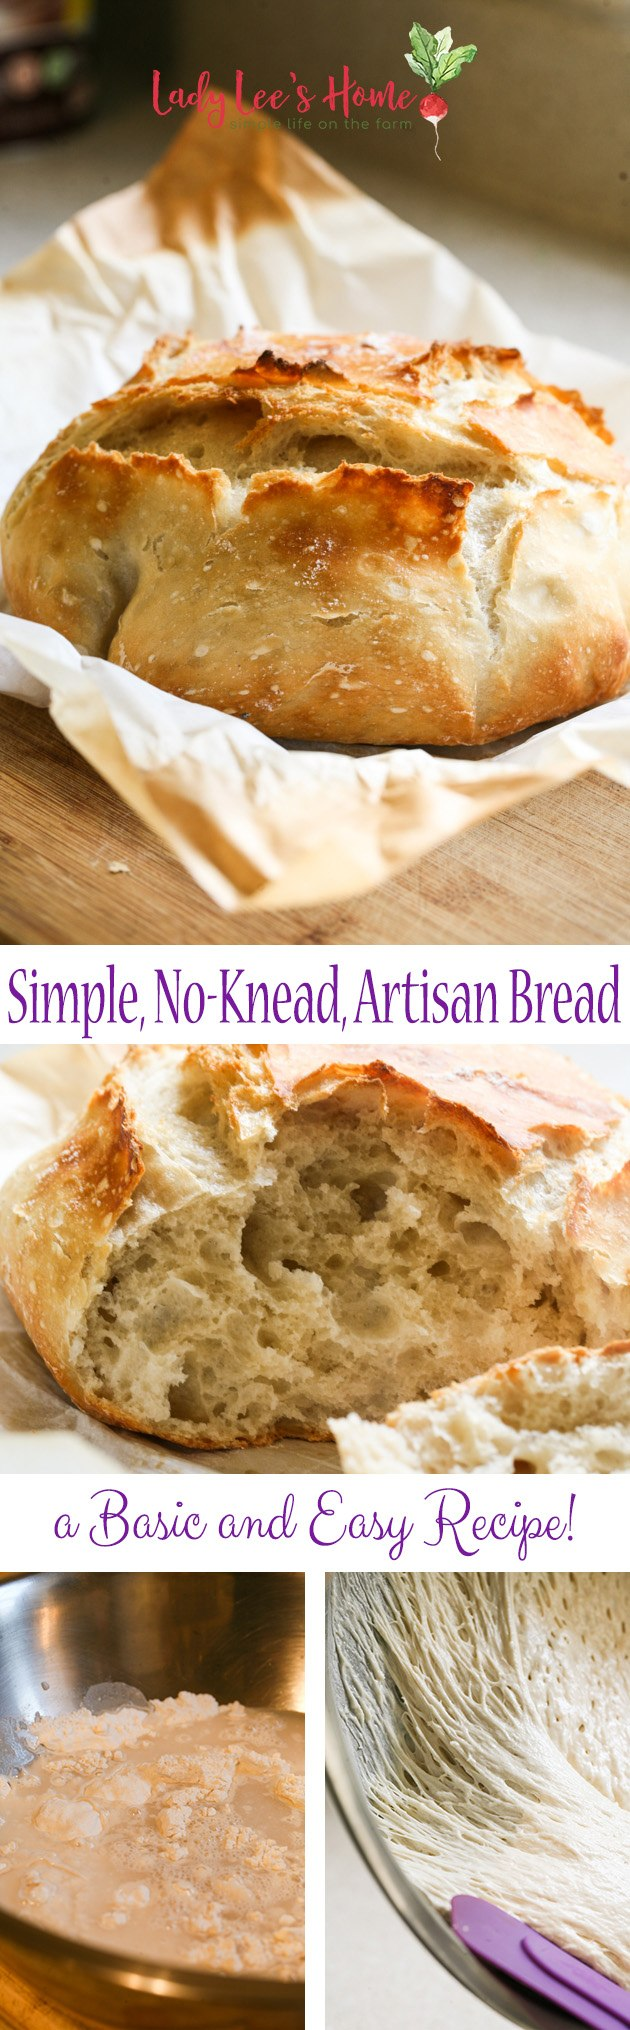 A simple, no-knead, artisan bread. This is a simple basic recipe that everyone should have on hand. This bread has a hard crust and is so soft inside. It is beautiful and tasty!